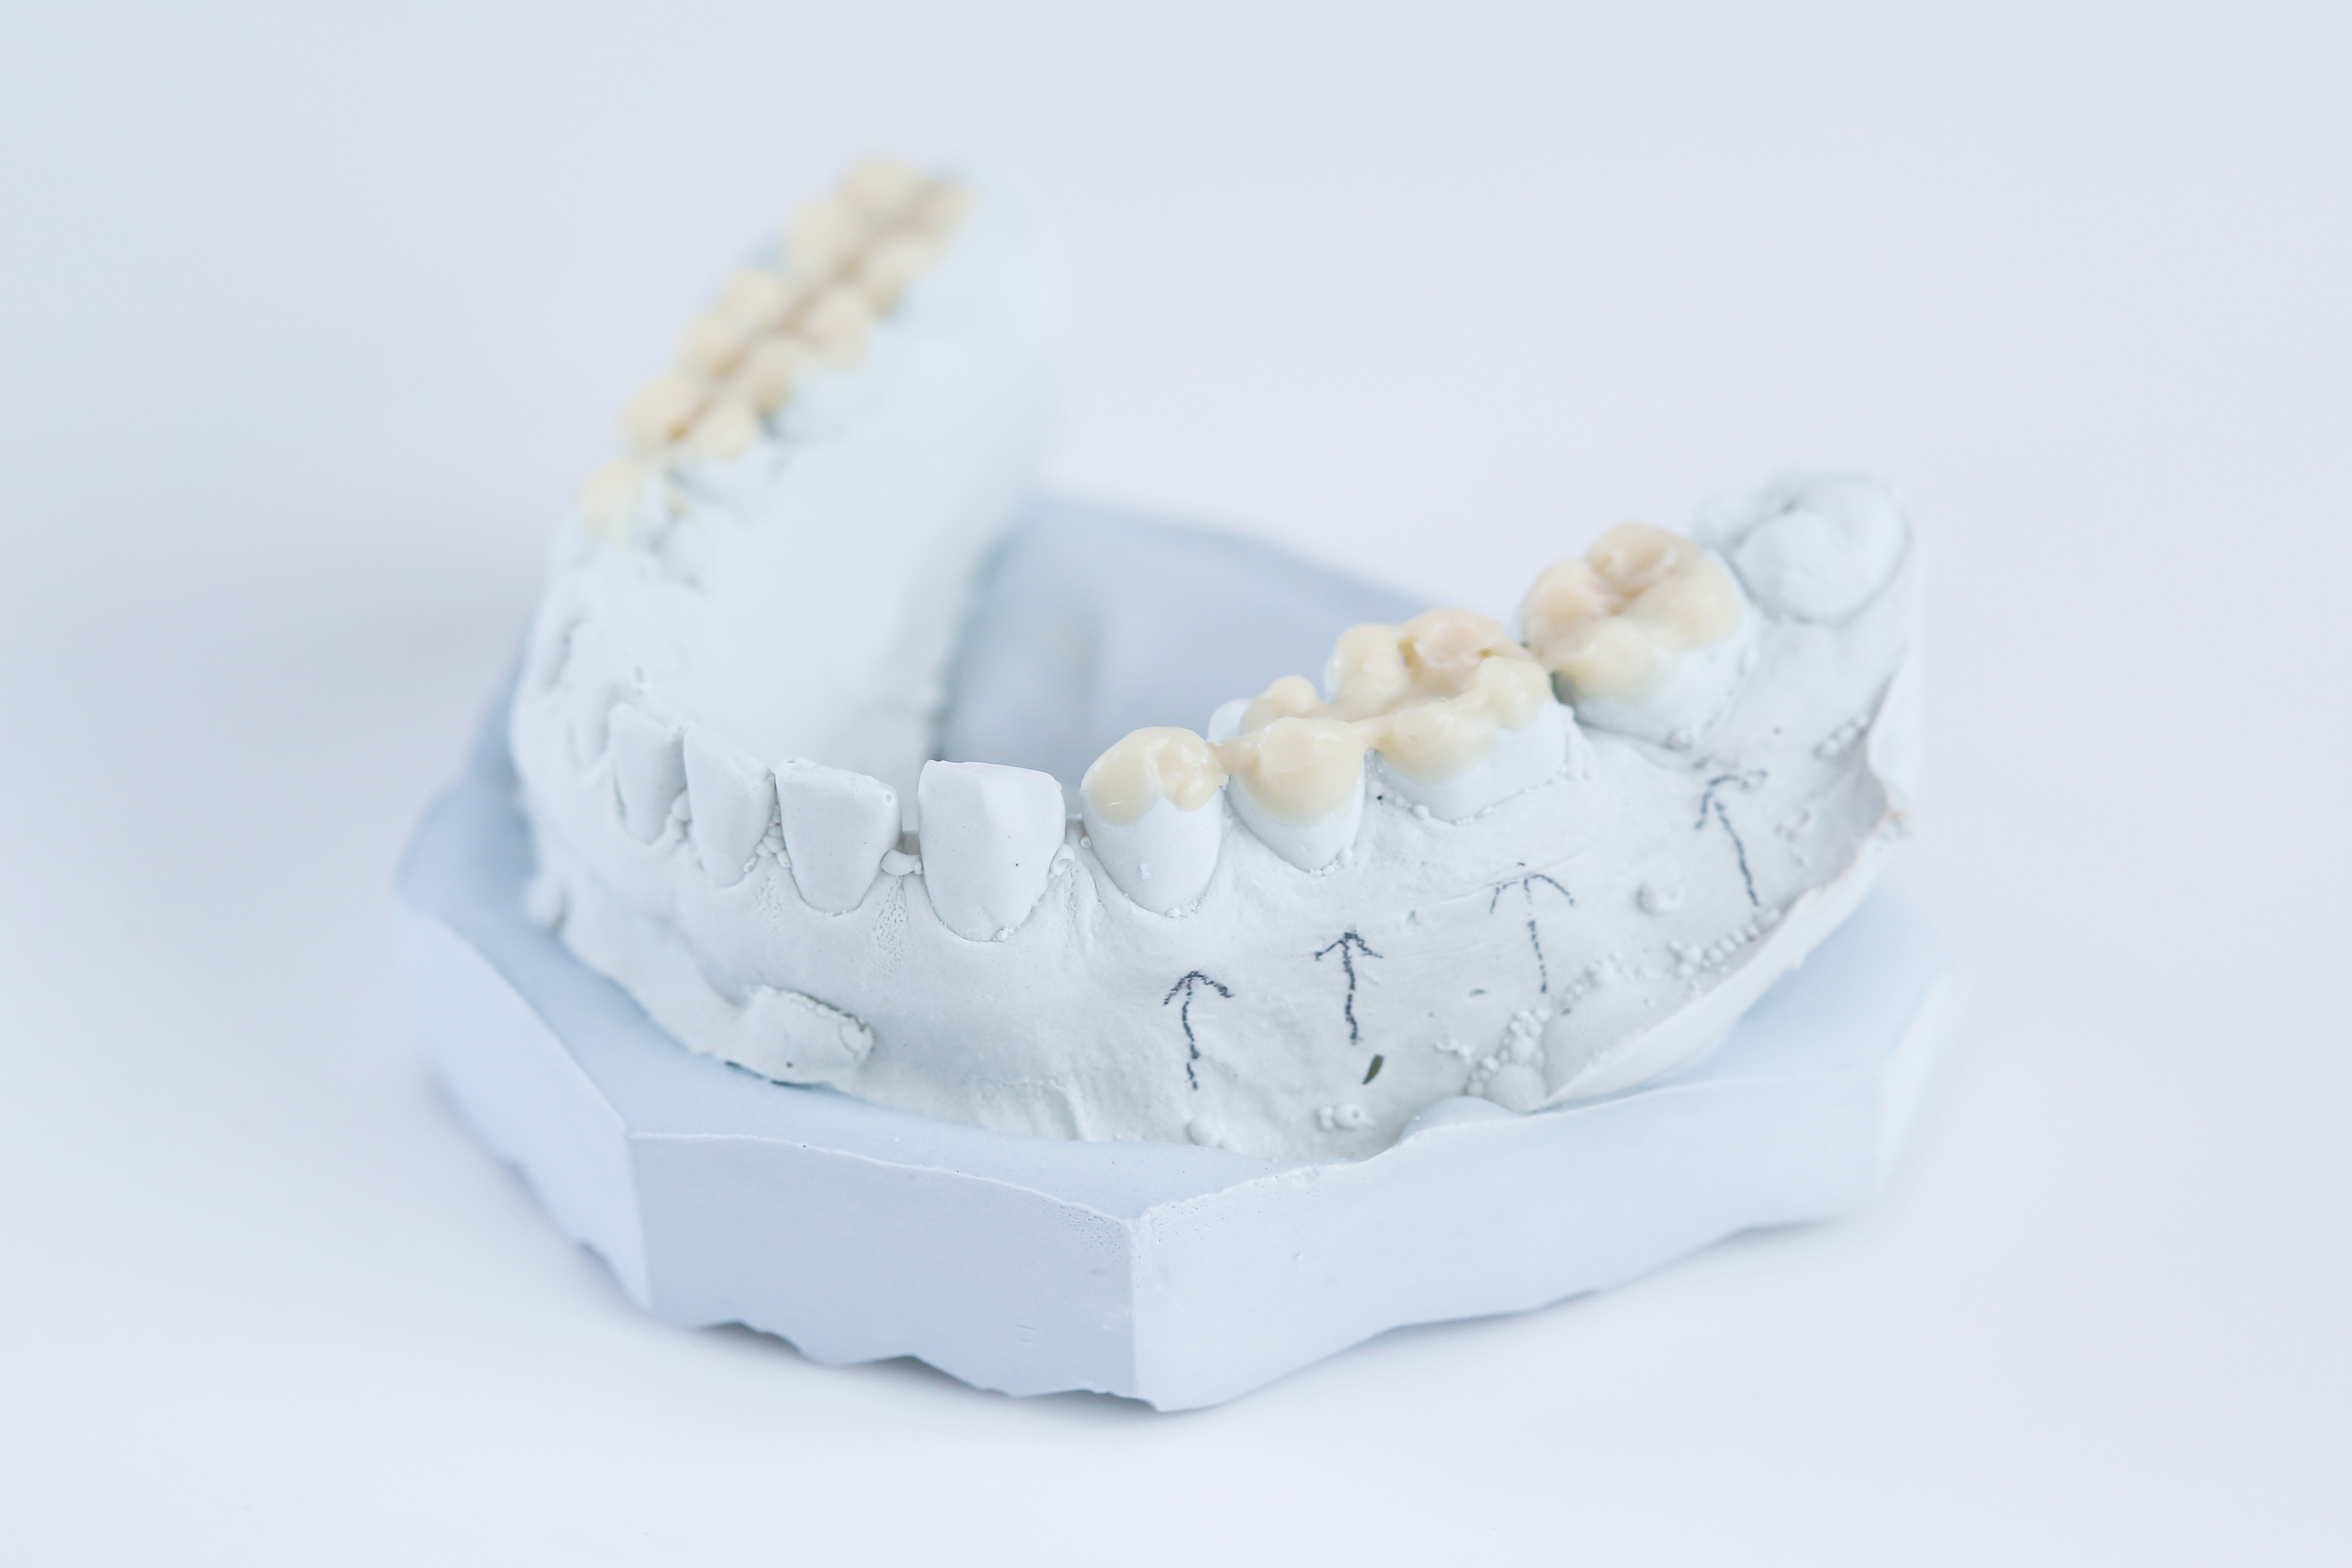 Dental plaster mold with ceramic crowns